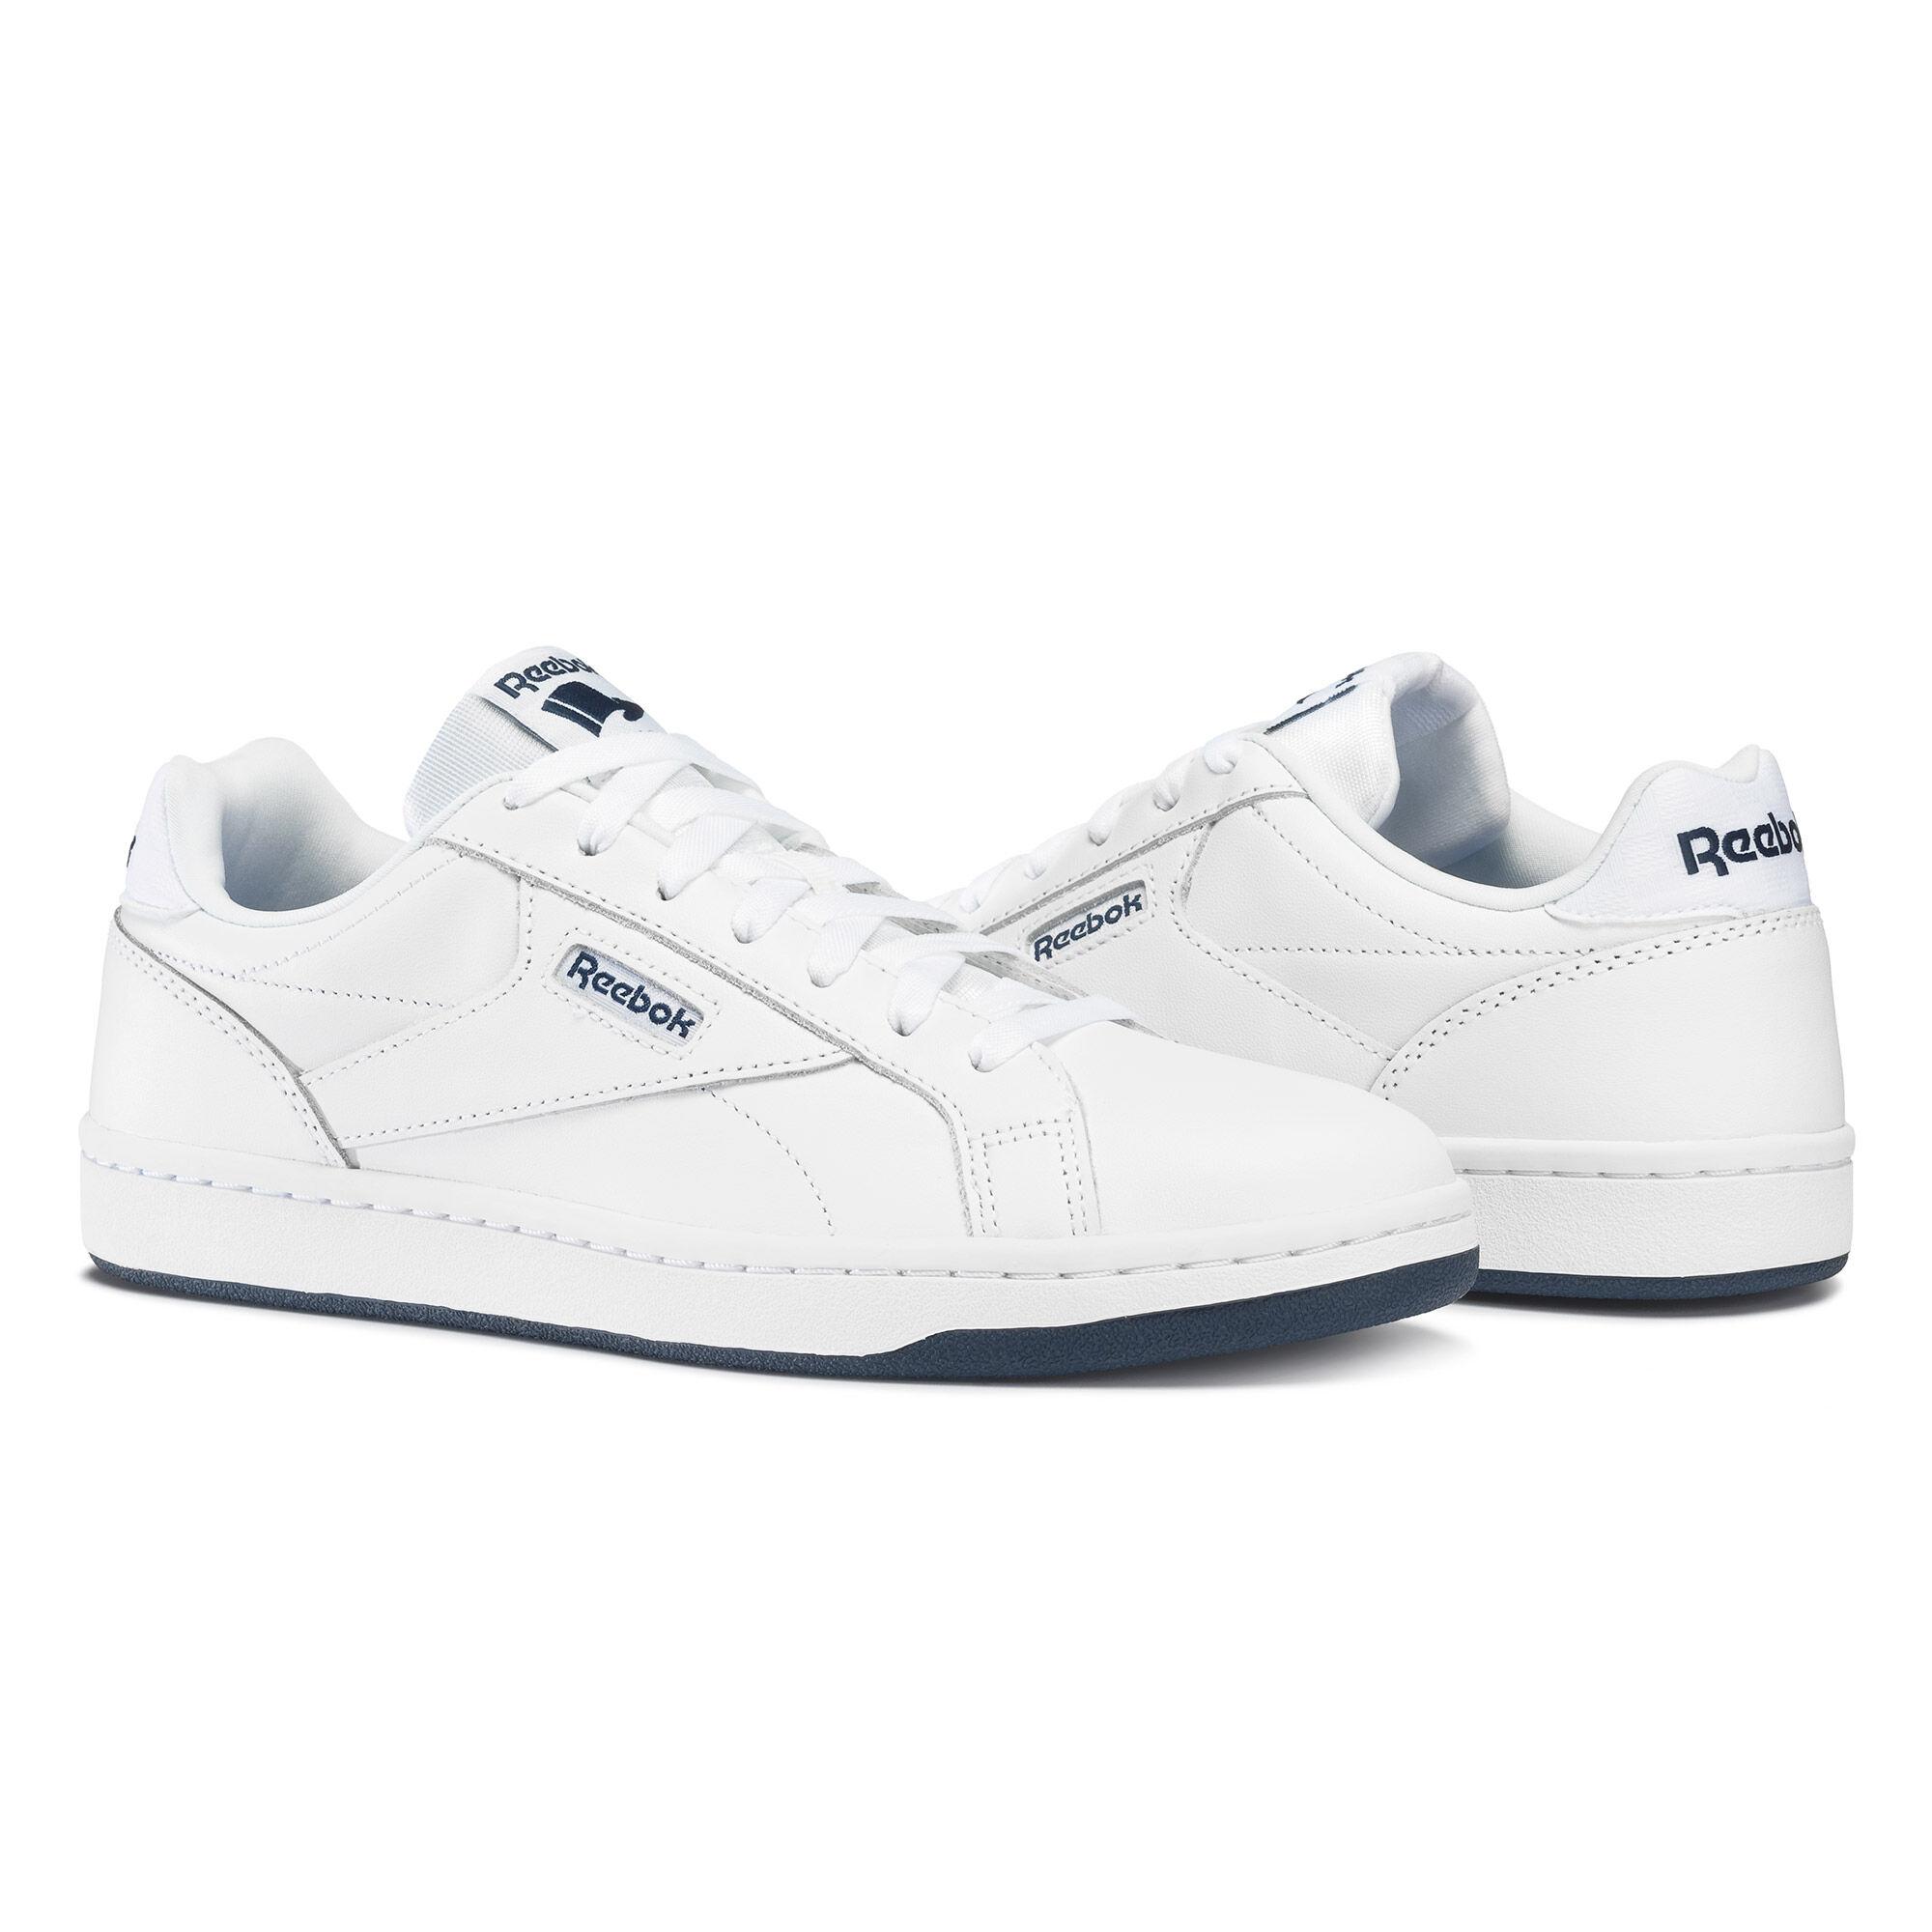 Reebok - Reebok Royal Complete Clean LX White/Collegiate Navy BS8194. Read  all 3 reviews. Men Classics